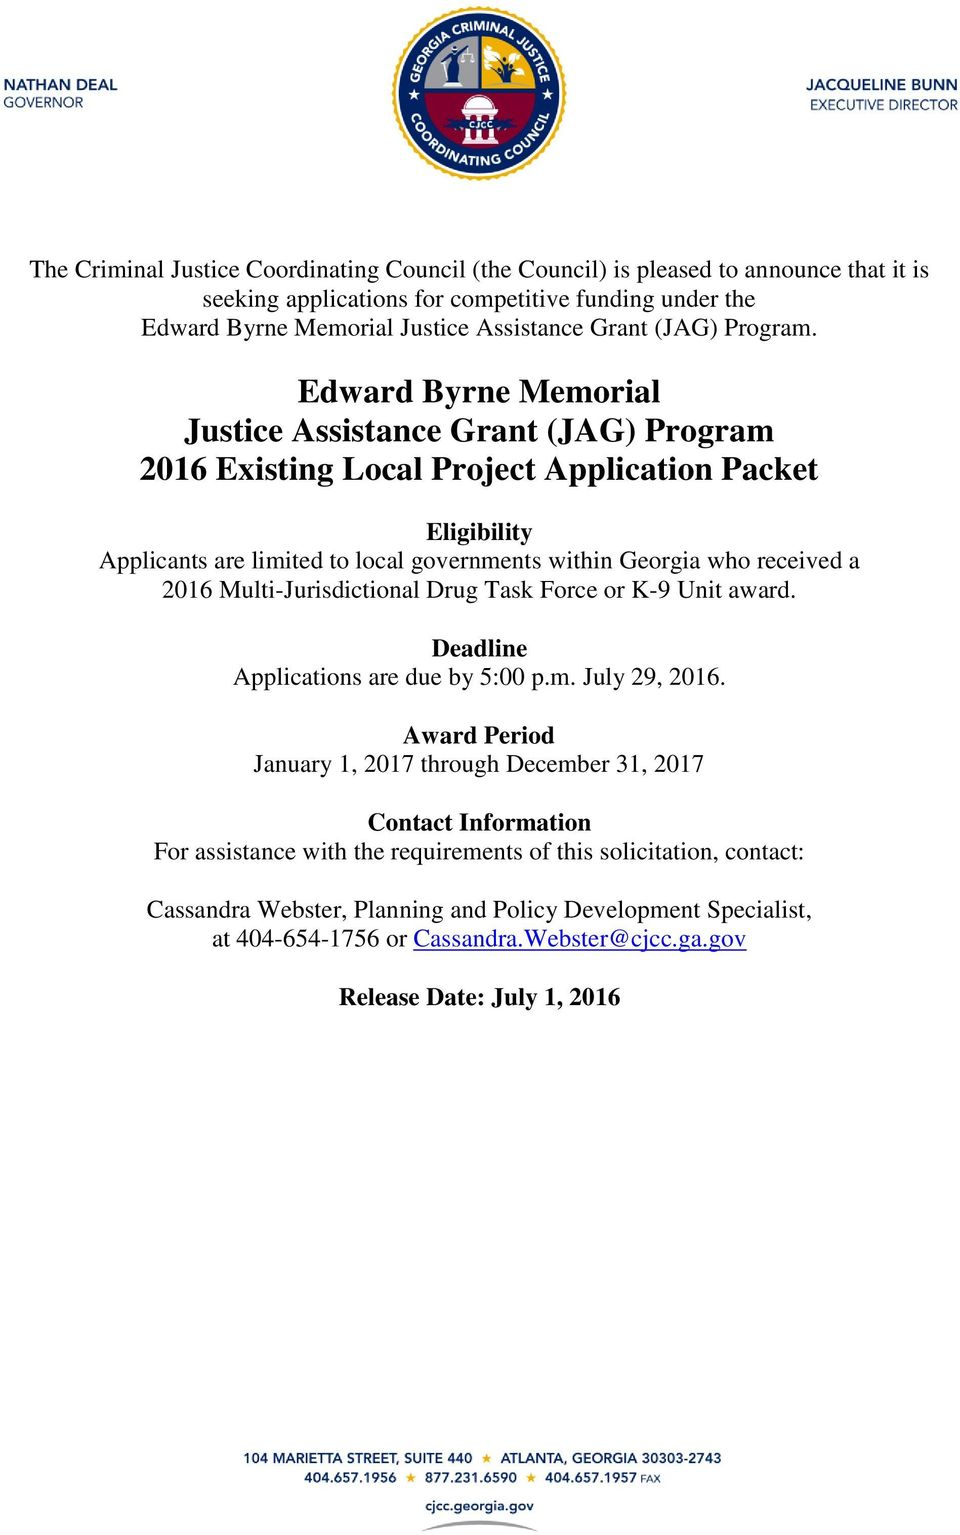 Edward Byrne Memorial Justice Assistance Grant (JAG) Program 2016 Existing Local Project Application Packet Eligibility Applicants are limited to local governments within Georgia who received a 2016